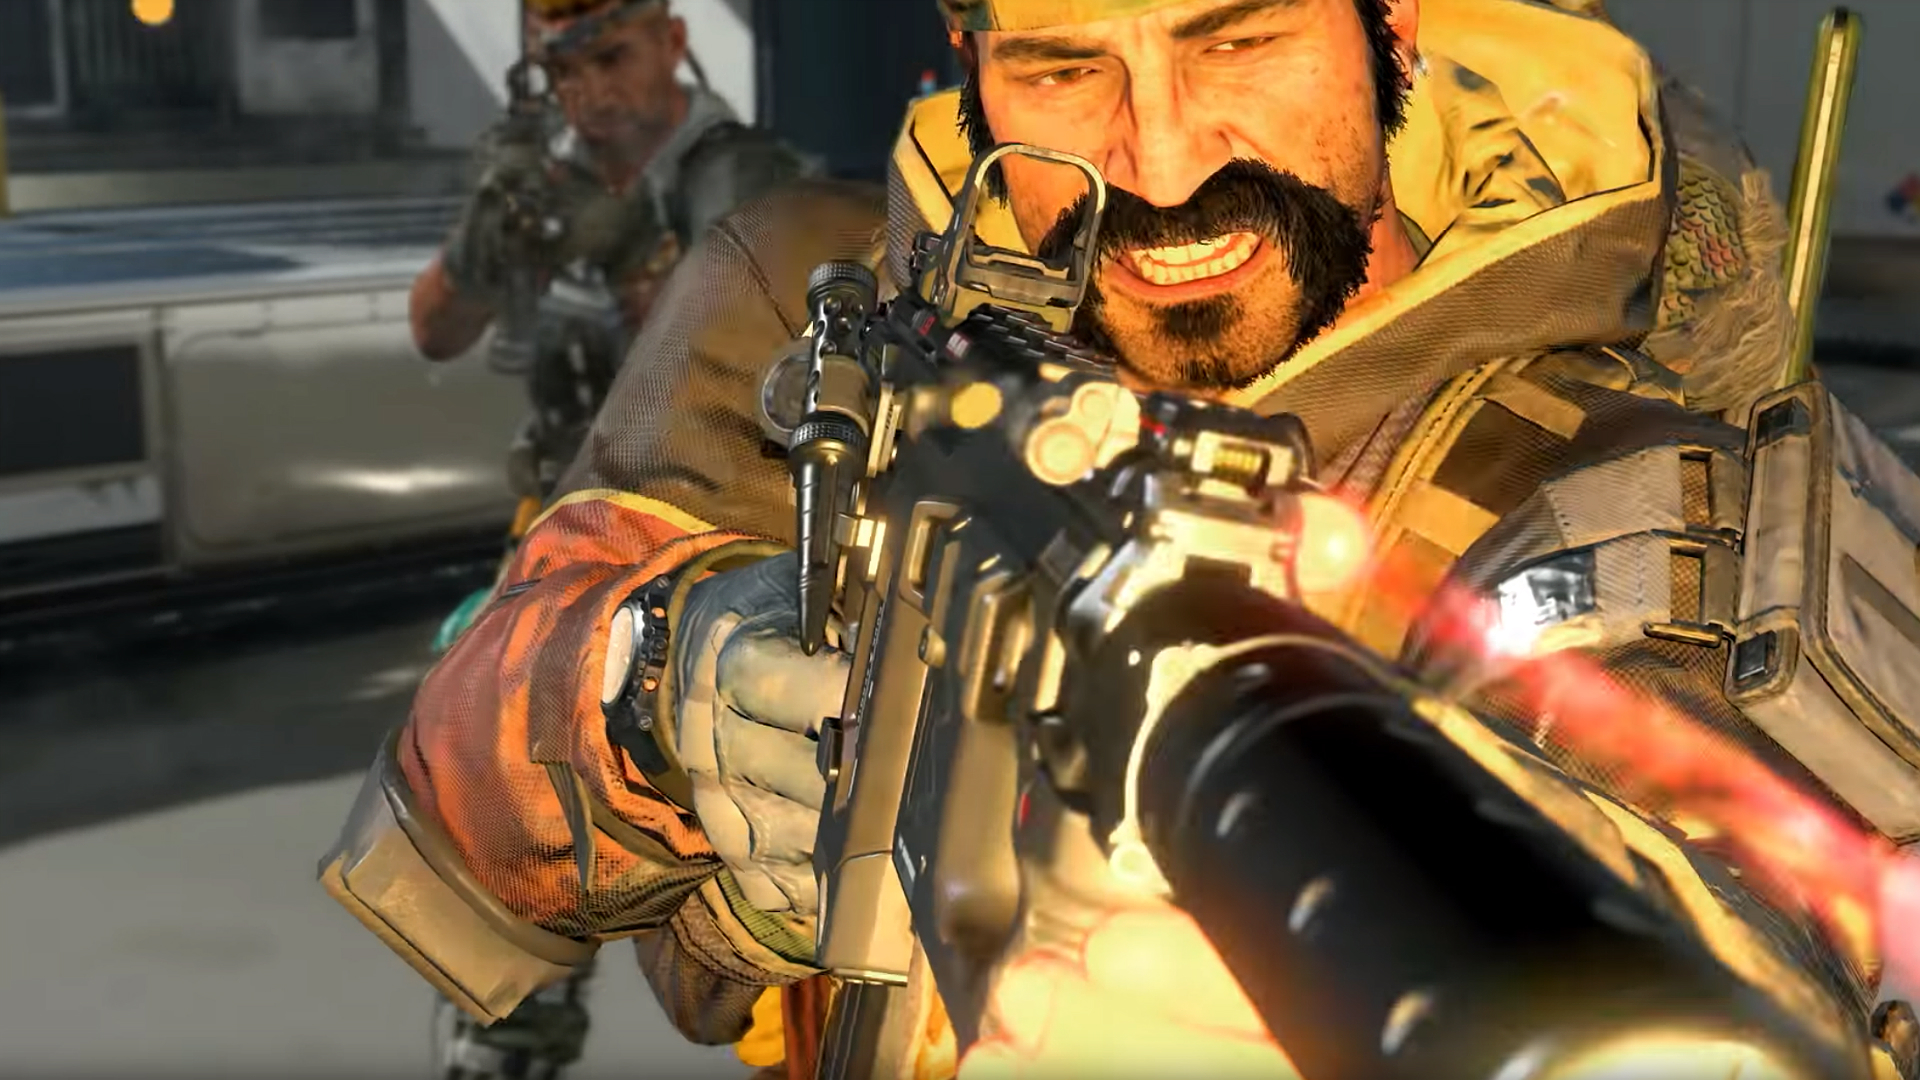 Black ops 1 release date in Perth